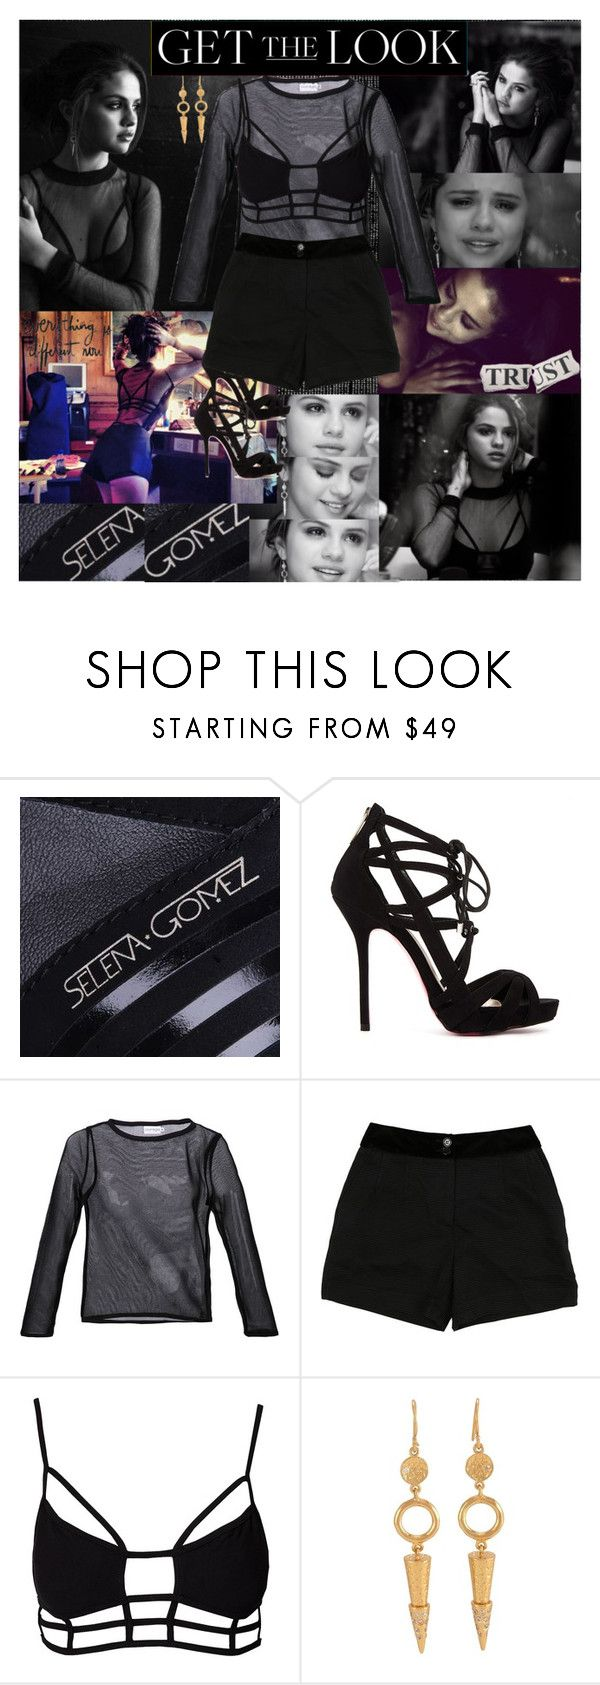 """""""Selena Gomez~The Heart Wants What It Wants Music Video"""" by tvshowobsessed ❤ liked on Polyvore featuring Justin Bieber, Carvela, Courrèges, D&G, OneTeaspoon and Melinda Maria"""